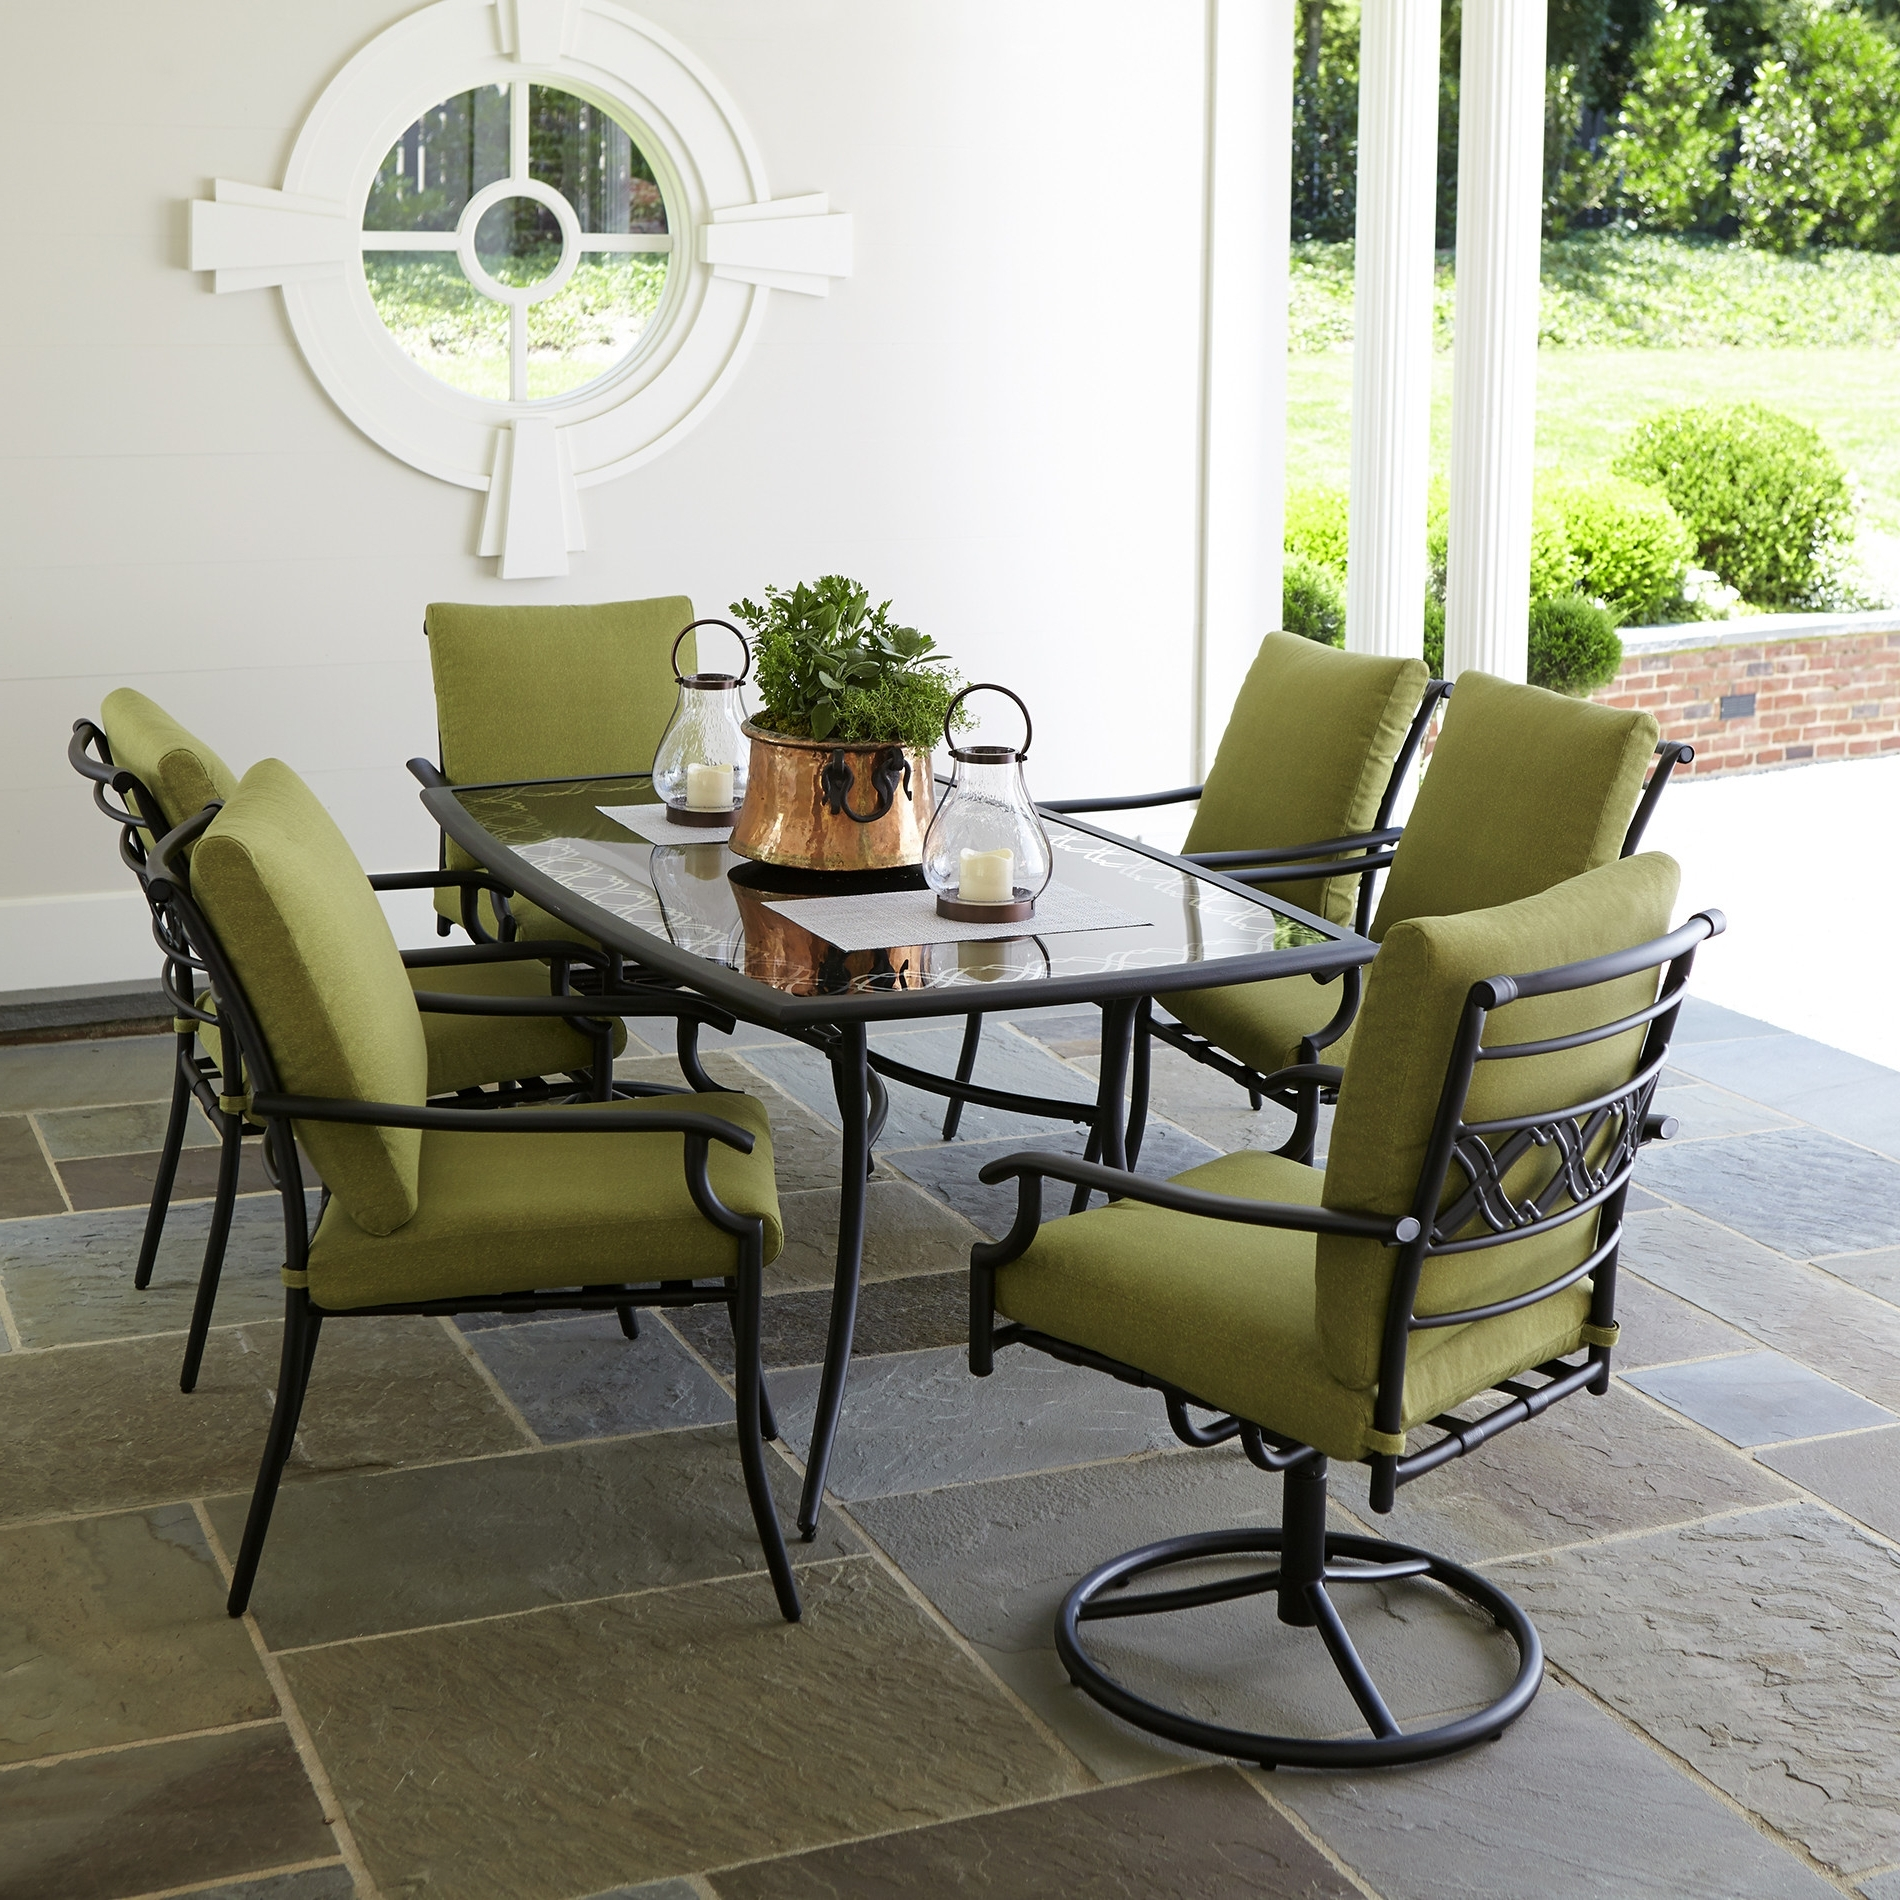 2019 30 Beautiful Conversation Sets Patio Furniture Idea Best Furniture Intended For Patio Conversation Sets At Sears (View 1 of 20)